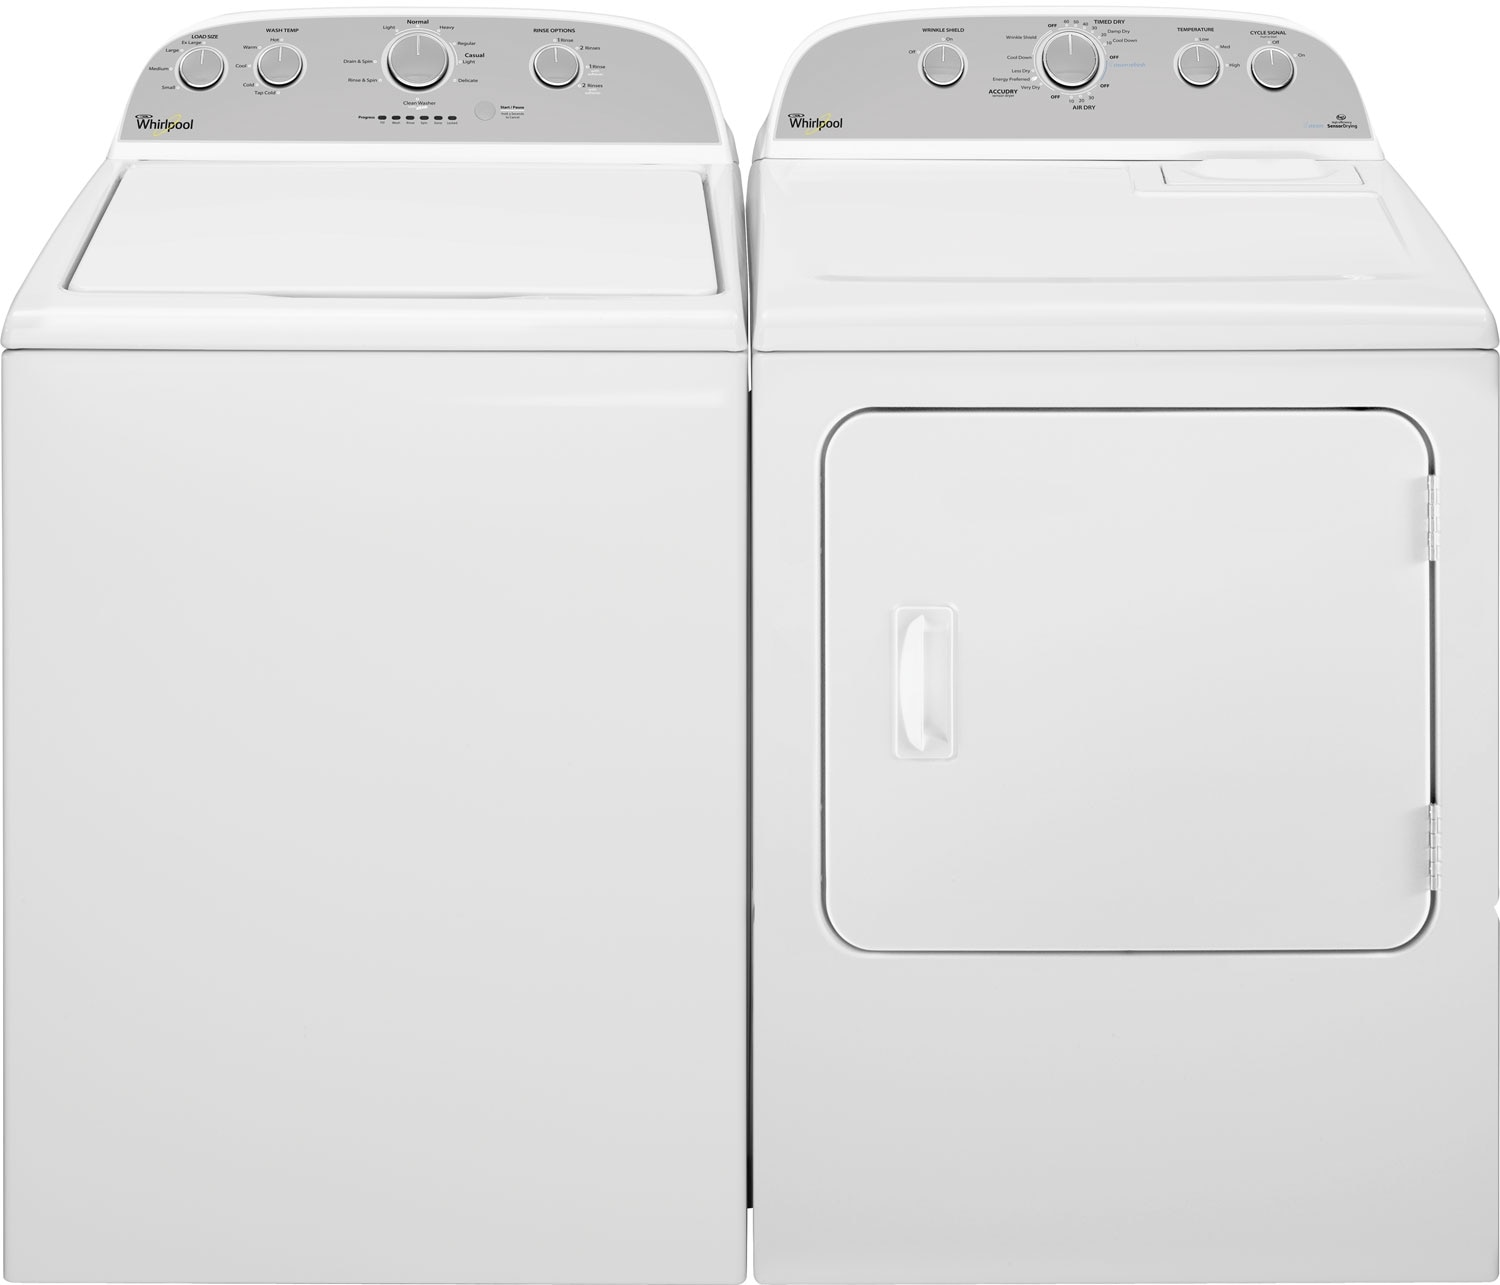 Washers and Dryers - Whirlpool® Cabrio® 5.0 Cu. Ft. Top-Load Washer and 7.0 Cu. Ft. Dryer – White